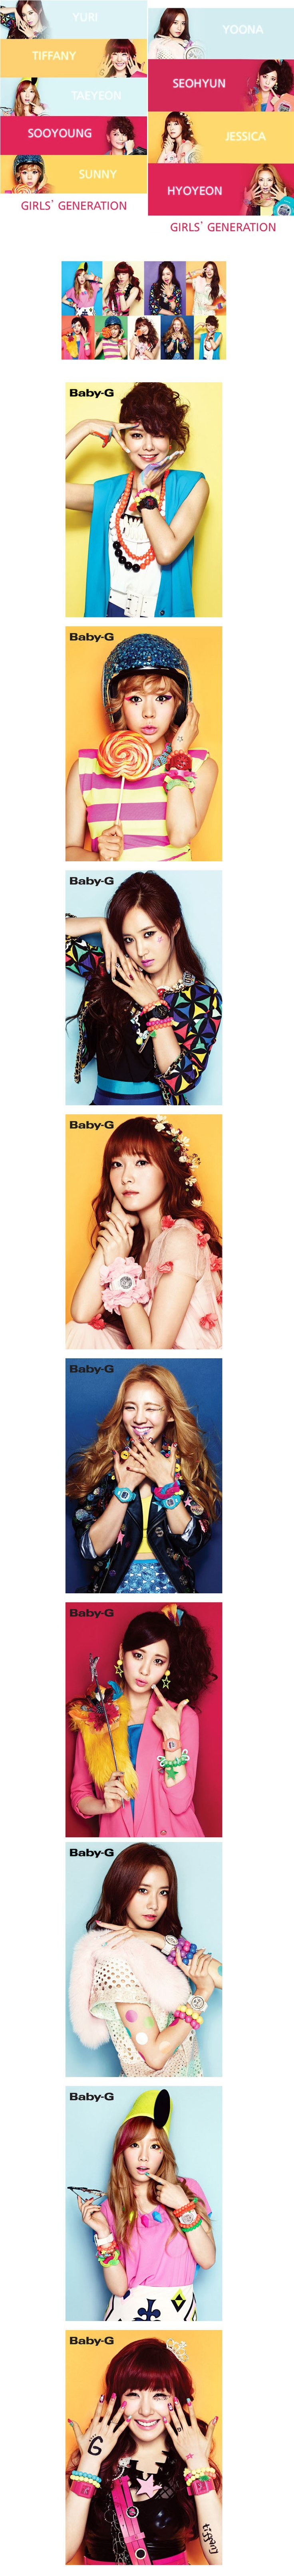 [Girls generation] SNSD CASIO CF Flier set (All members) $5.90 on kstargoods.com (The best kpop shop)